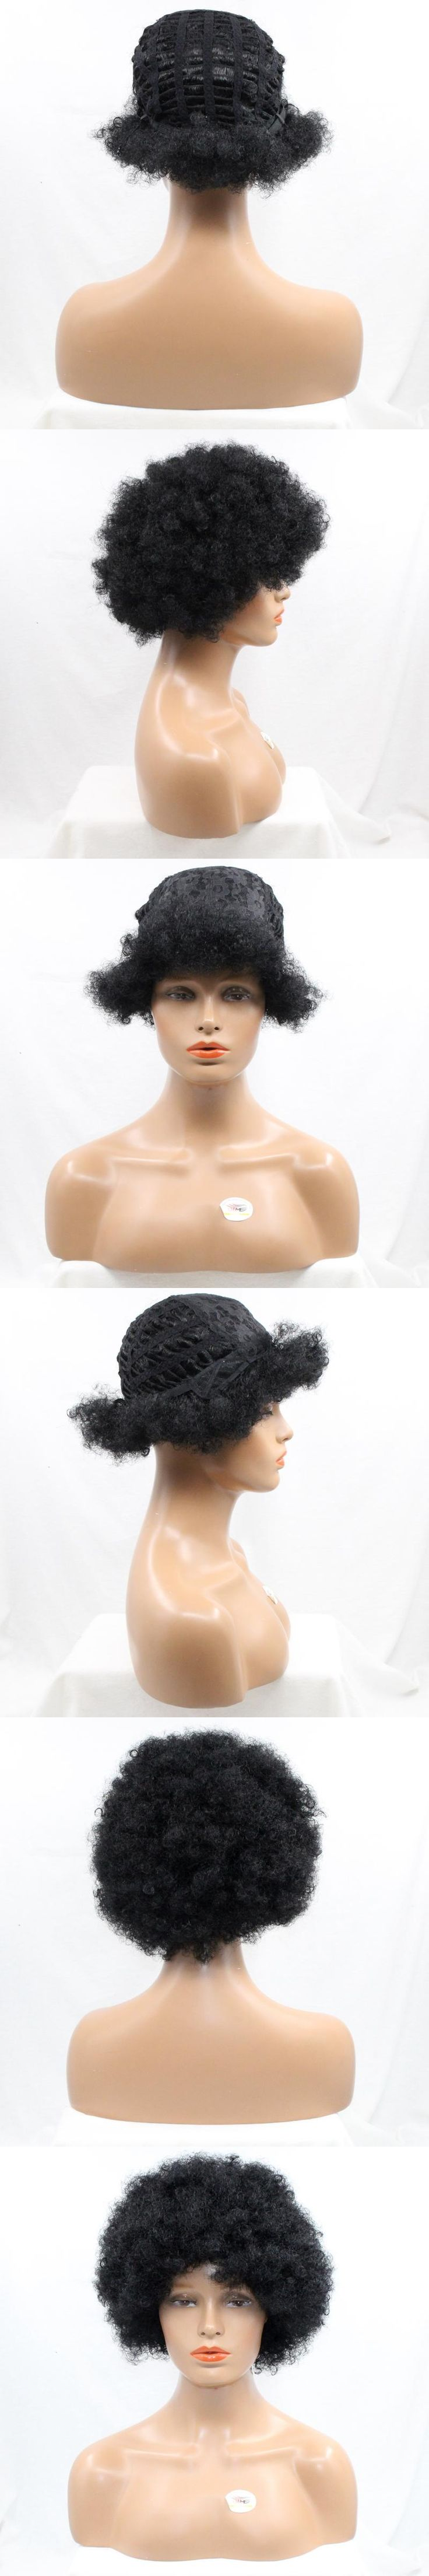 DLME Crazy Kinky Curly Short Bob Wig #1 Jet Black African American Heat Resistant Afro Small Curl Synthetic Hair Wigs